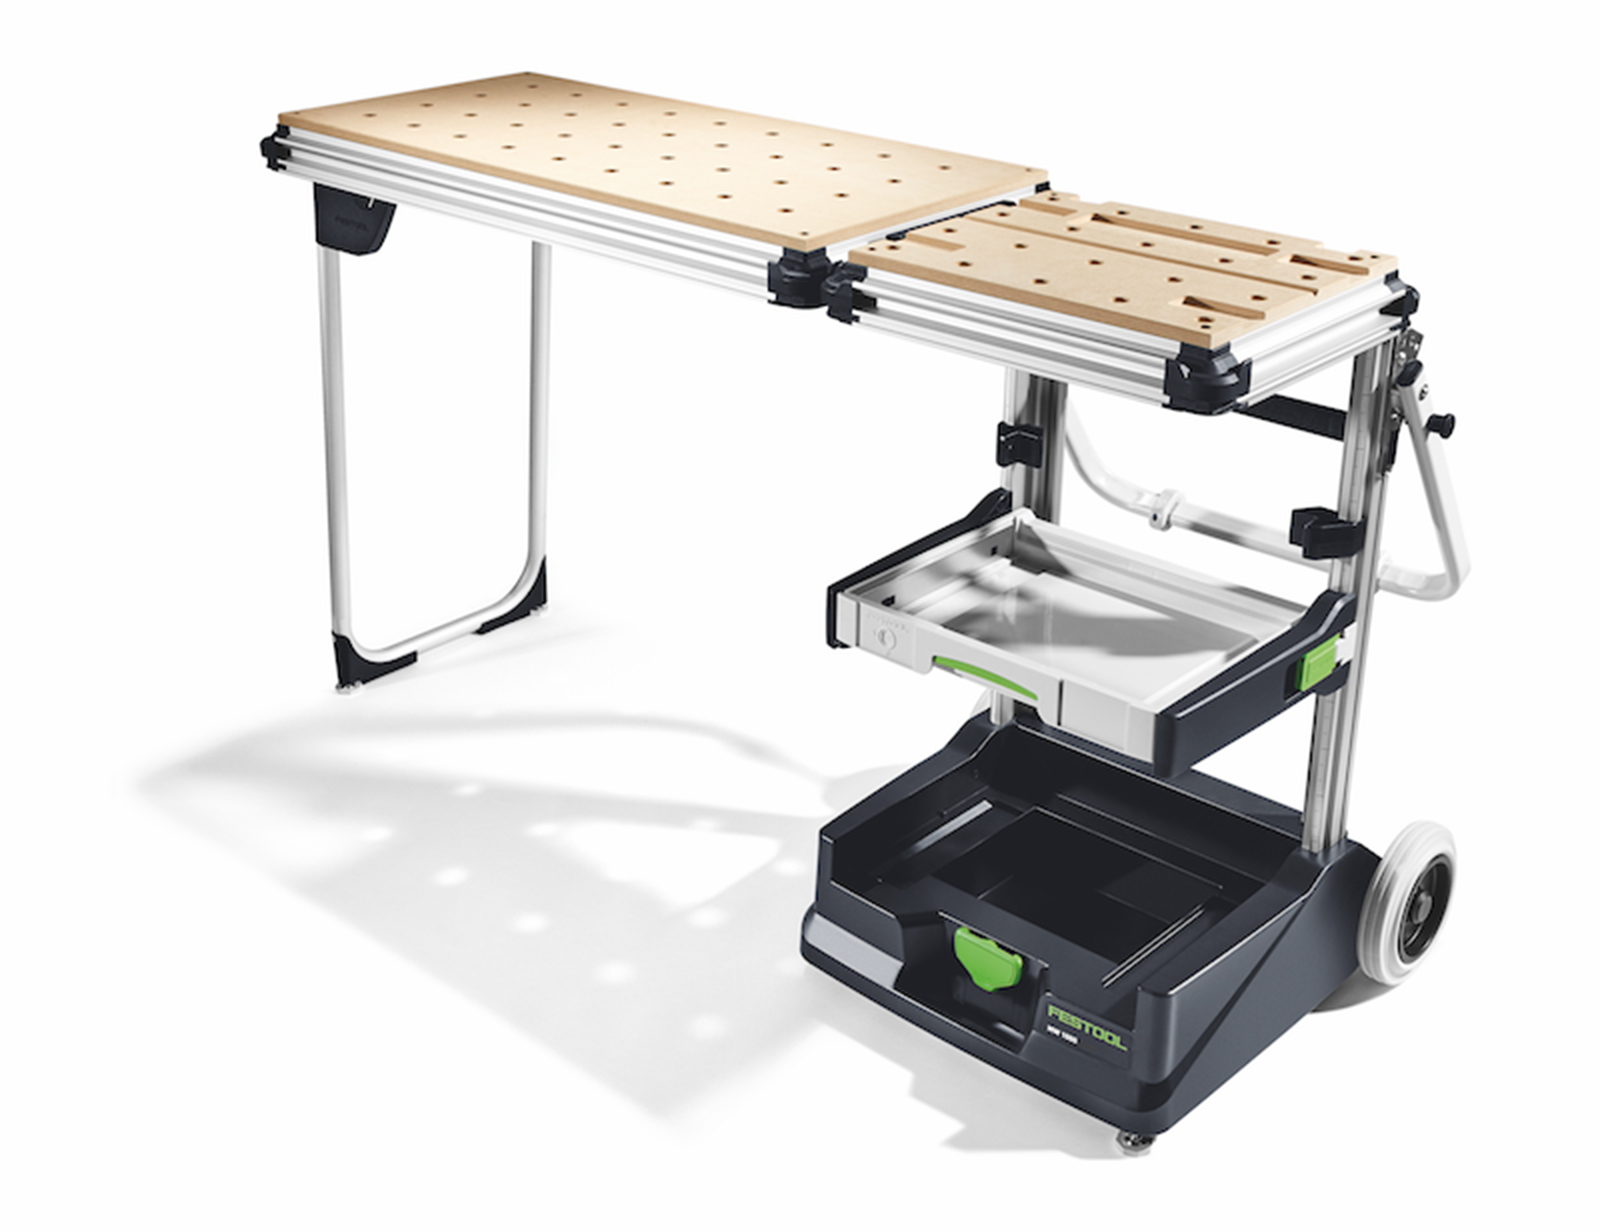 Festool MW 1000 mobile workshop